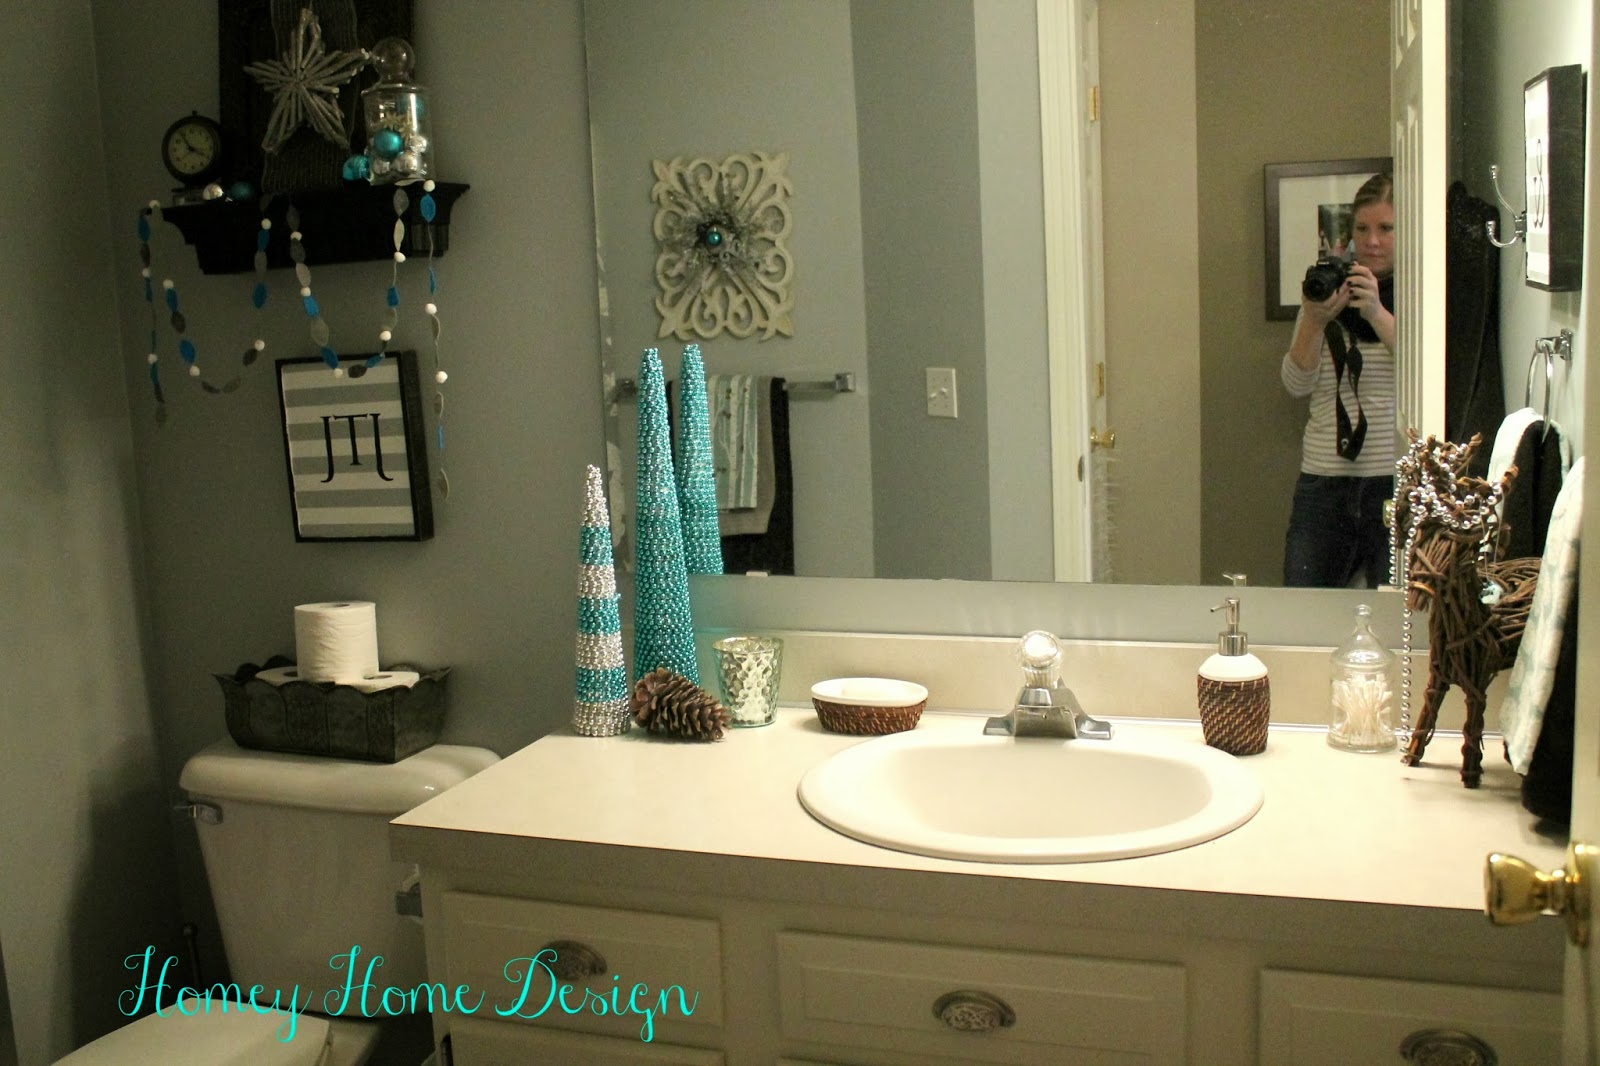 Homey Home Design: Bathroom Christmas Ideas